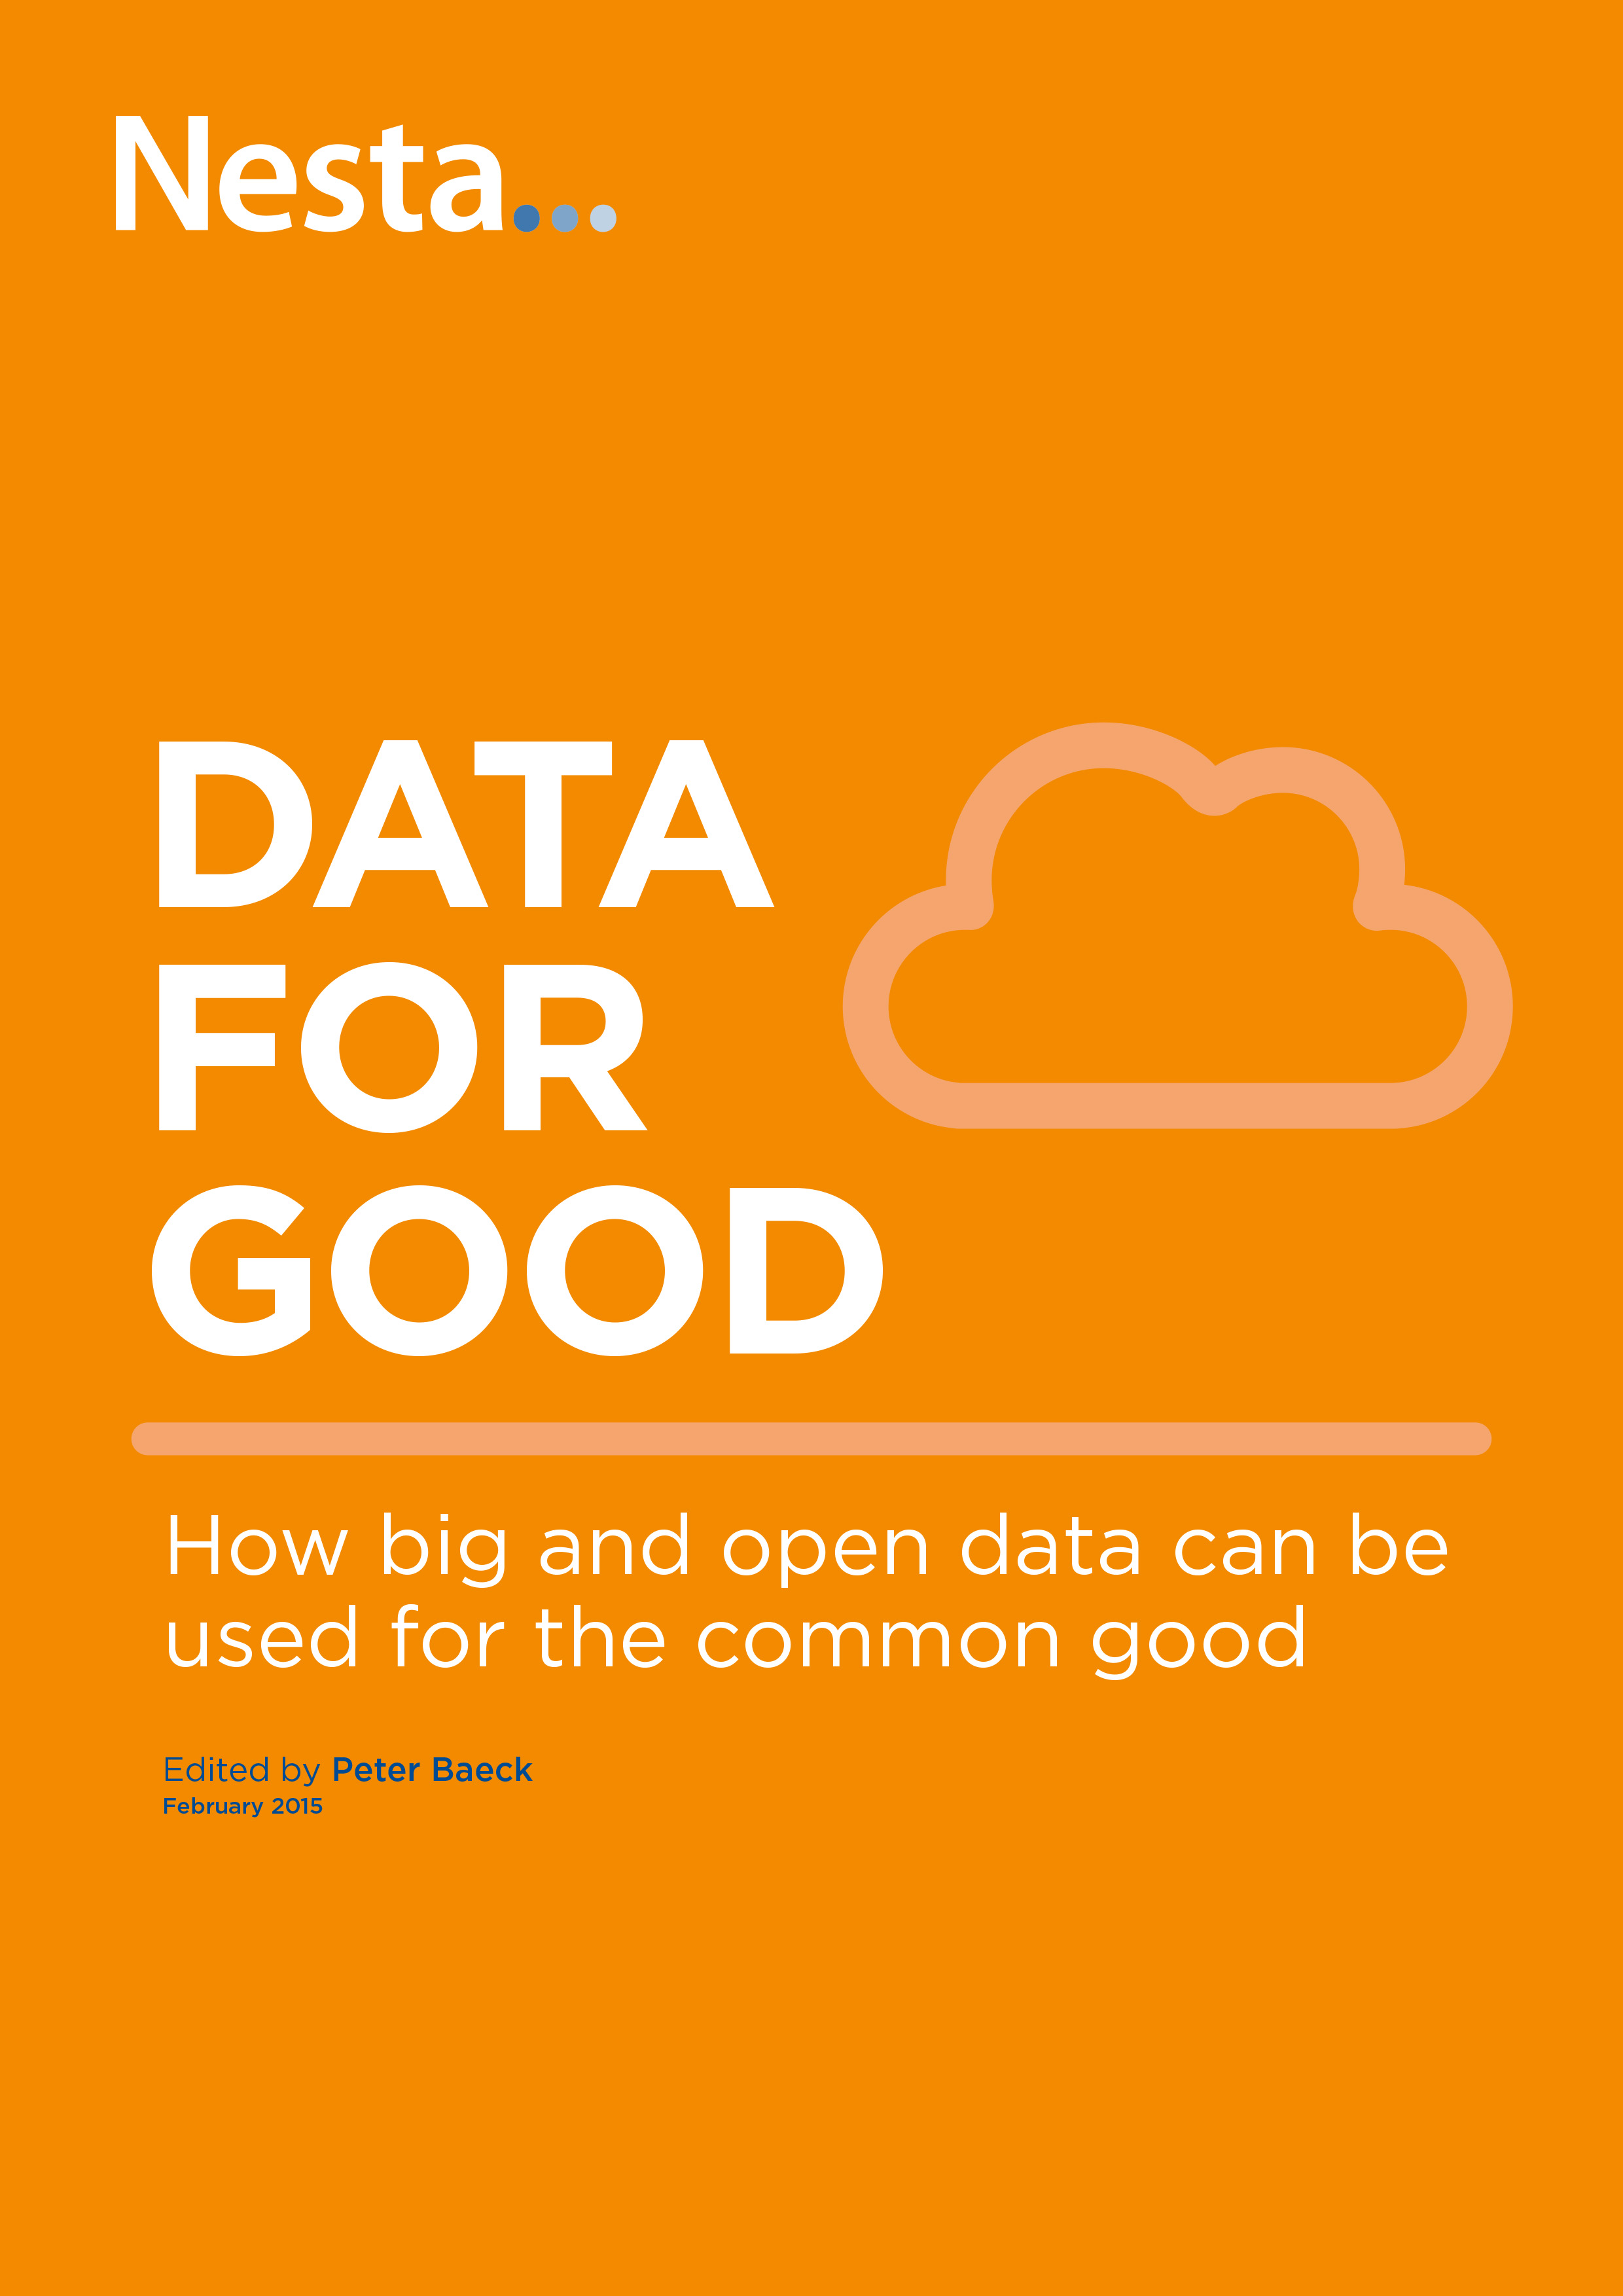 Data For Good: How Big and Open Data can be Used for the Common Good